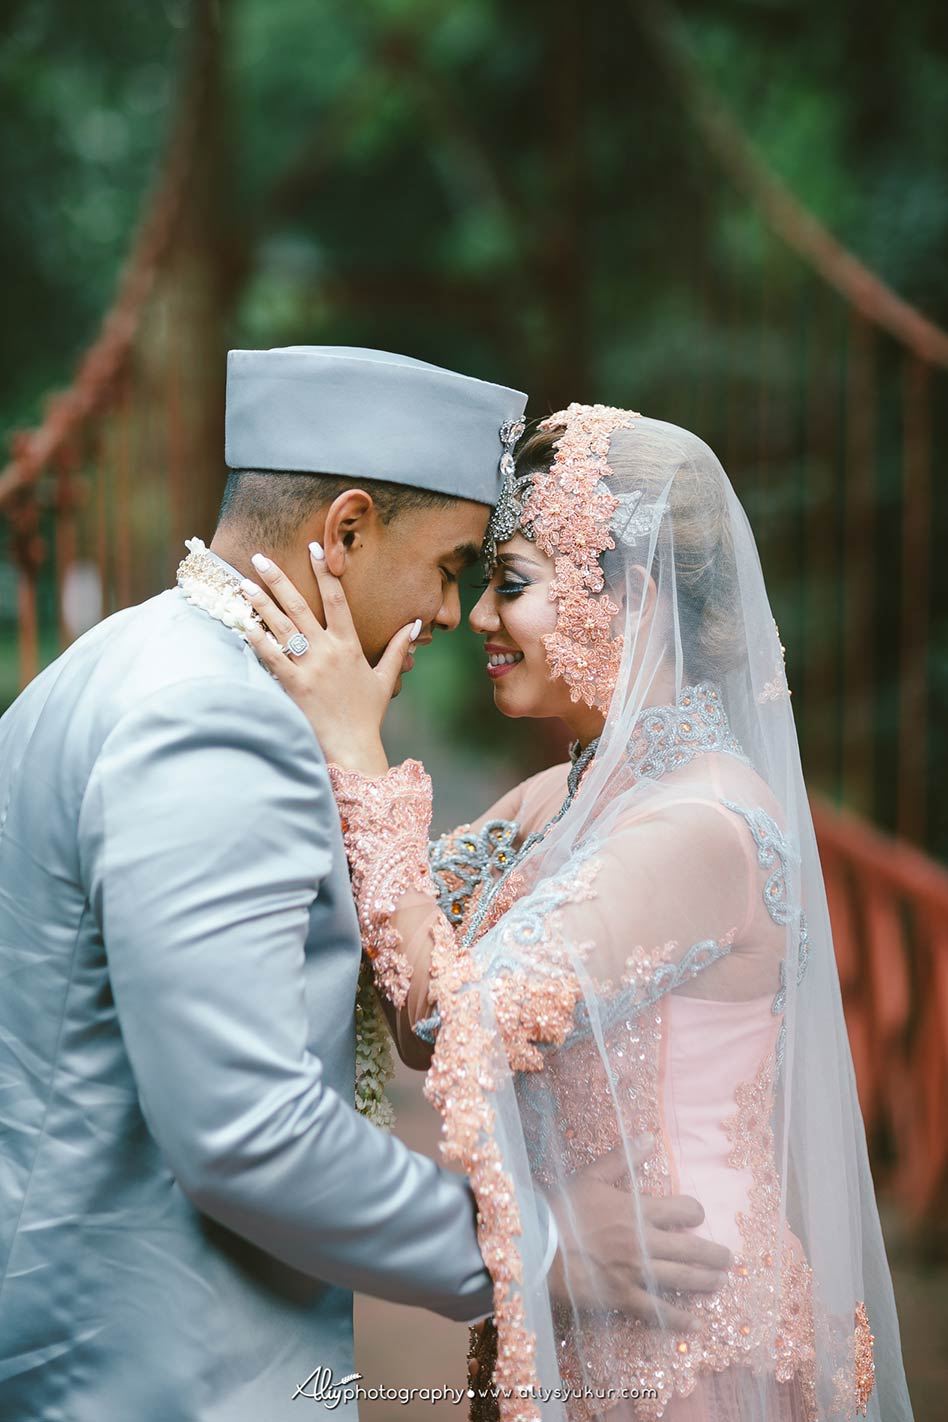 American Couple Post Wedding - Kebun Raya Bogor Post Wedding 18